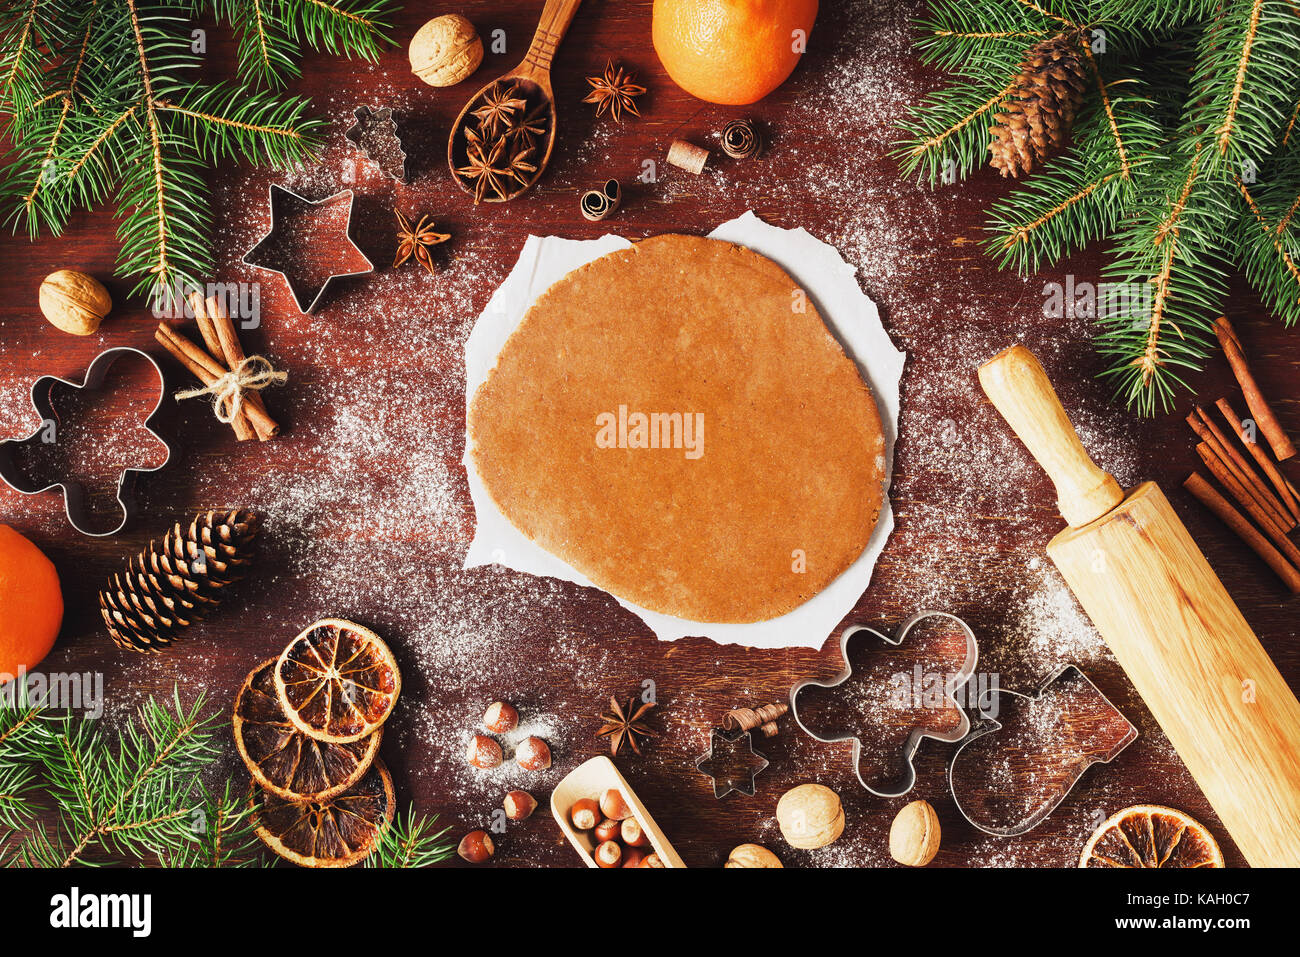 Gingerbread cookie dough déployé sur la table avec des décorations de Noël et du nouvel an. Photo Stock